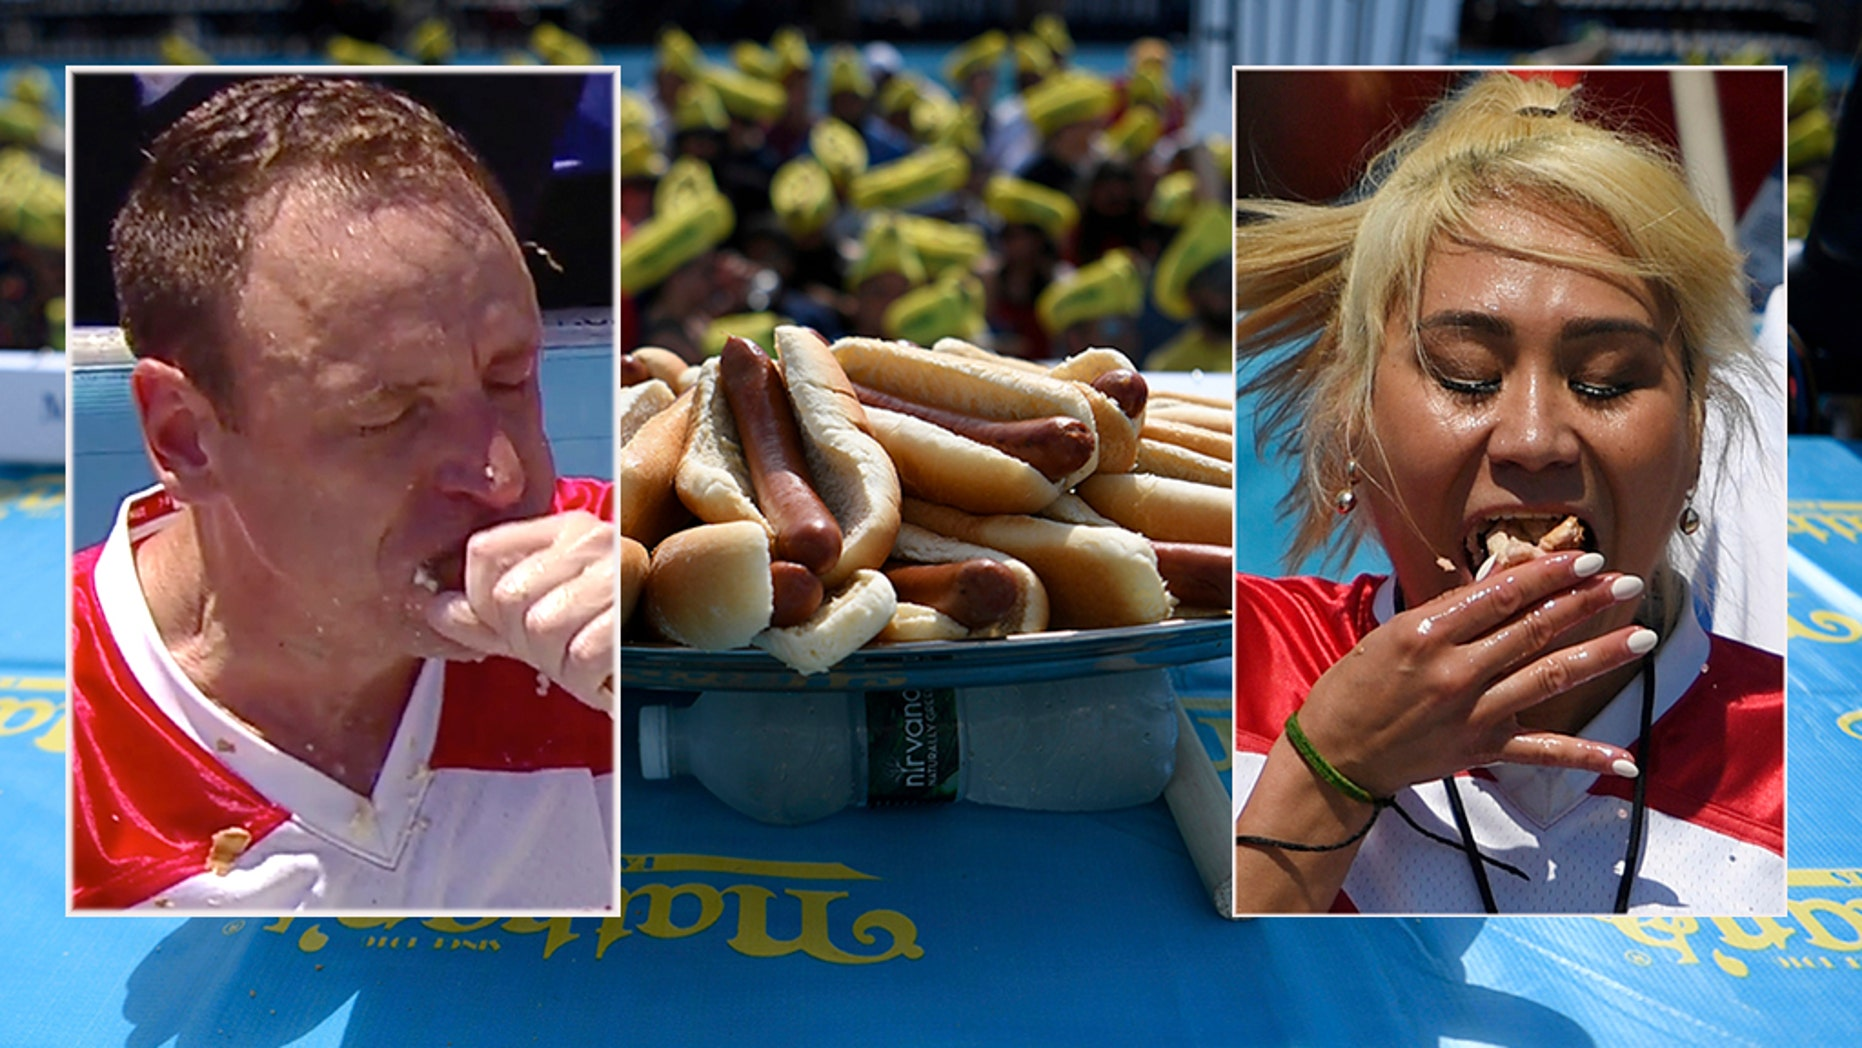 Hot dogs are displayed before the annual Nathan's Famous July Fourth hot dog eating contest, Thursday, July 4, 2019, in New York's Coney Island.